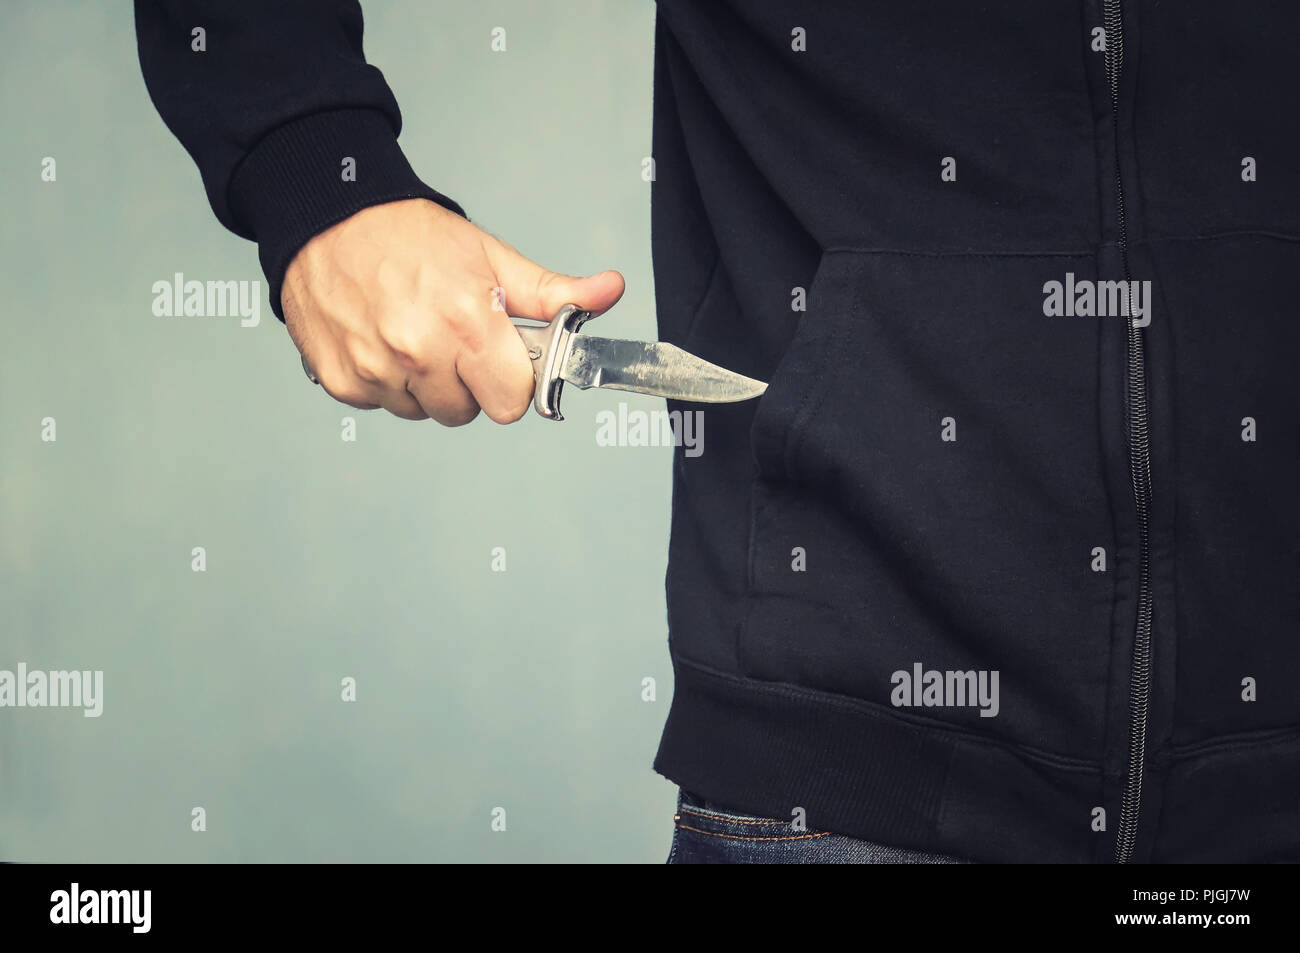 A maniac with a knife in his pocket. The murderer hides a small folding knife. Intimidation with a knife in the robbery. mafia. - Stock Image